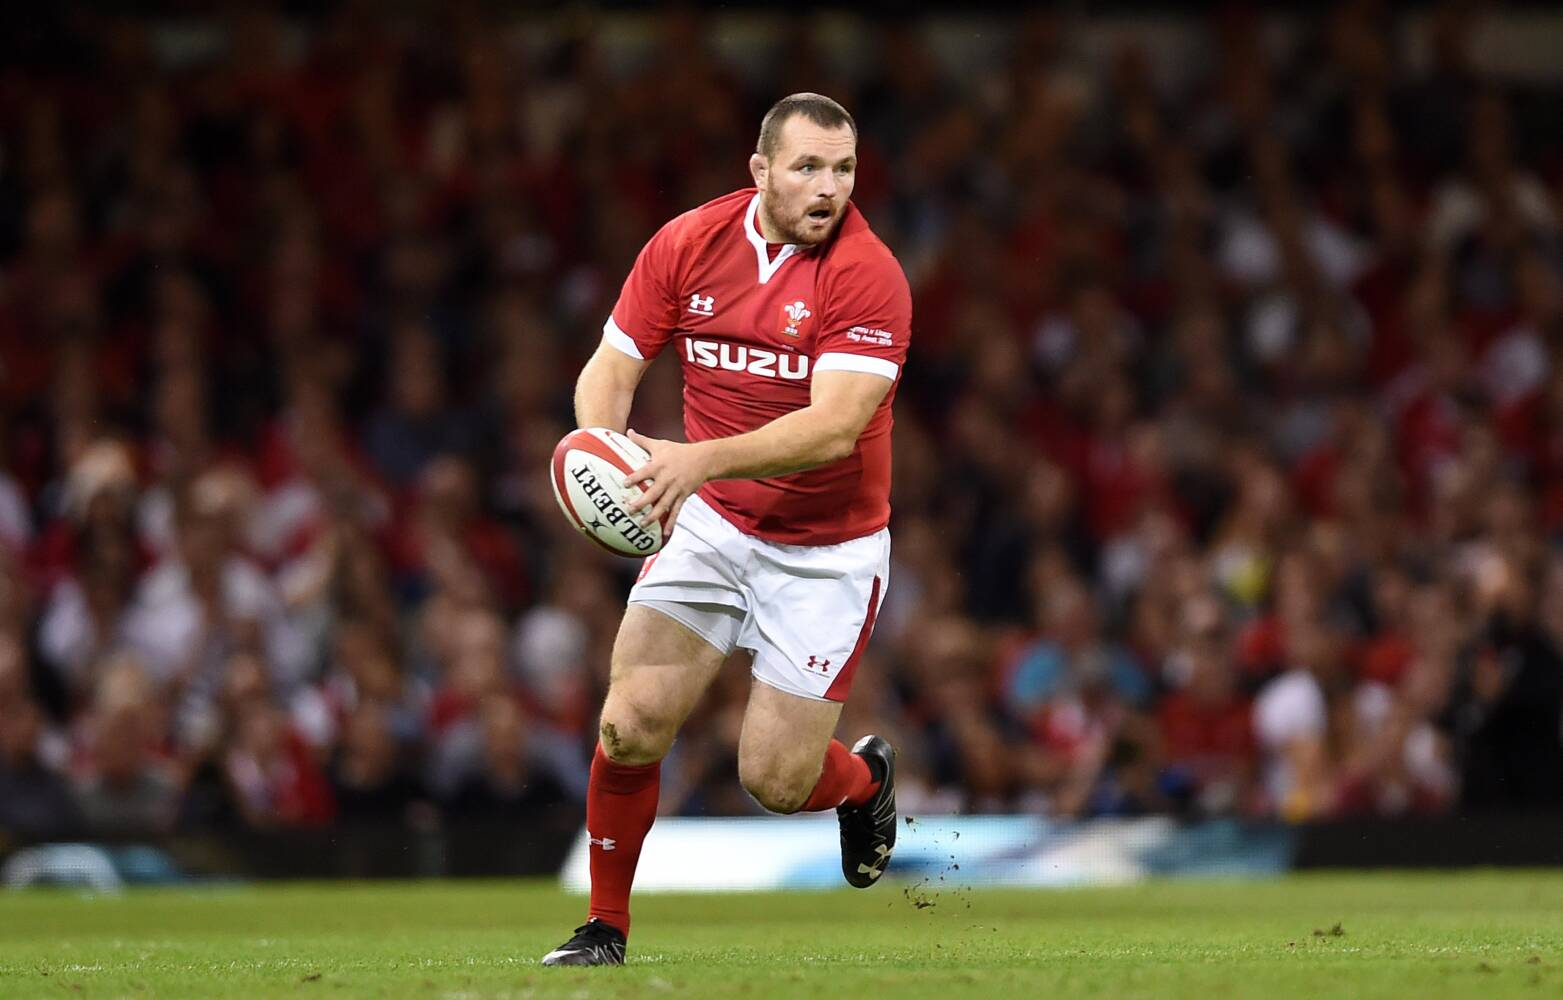 RWC pool opponents will provide different threats – Owens